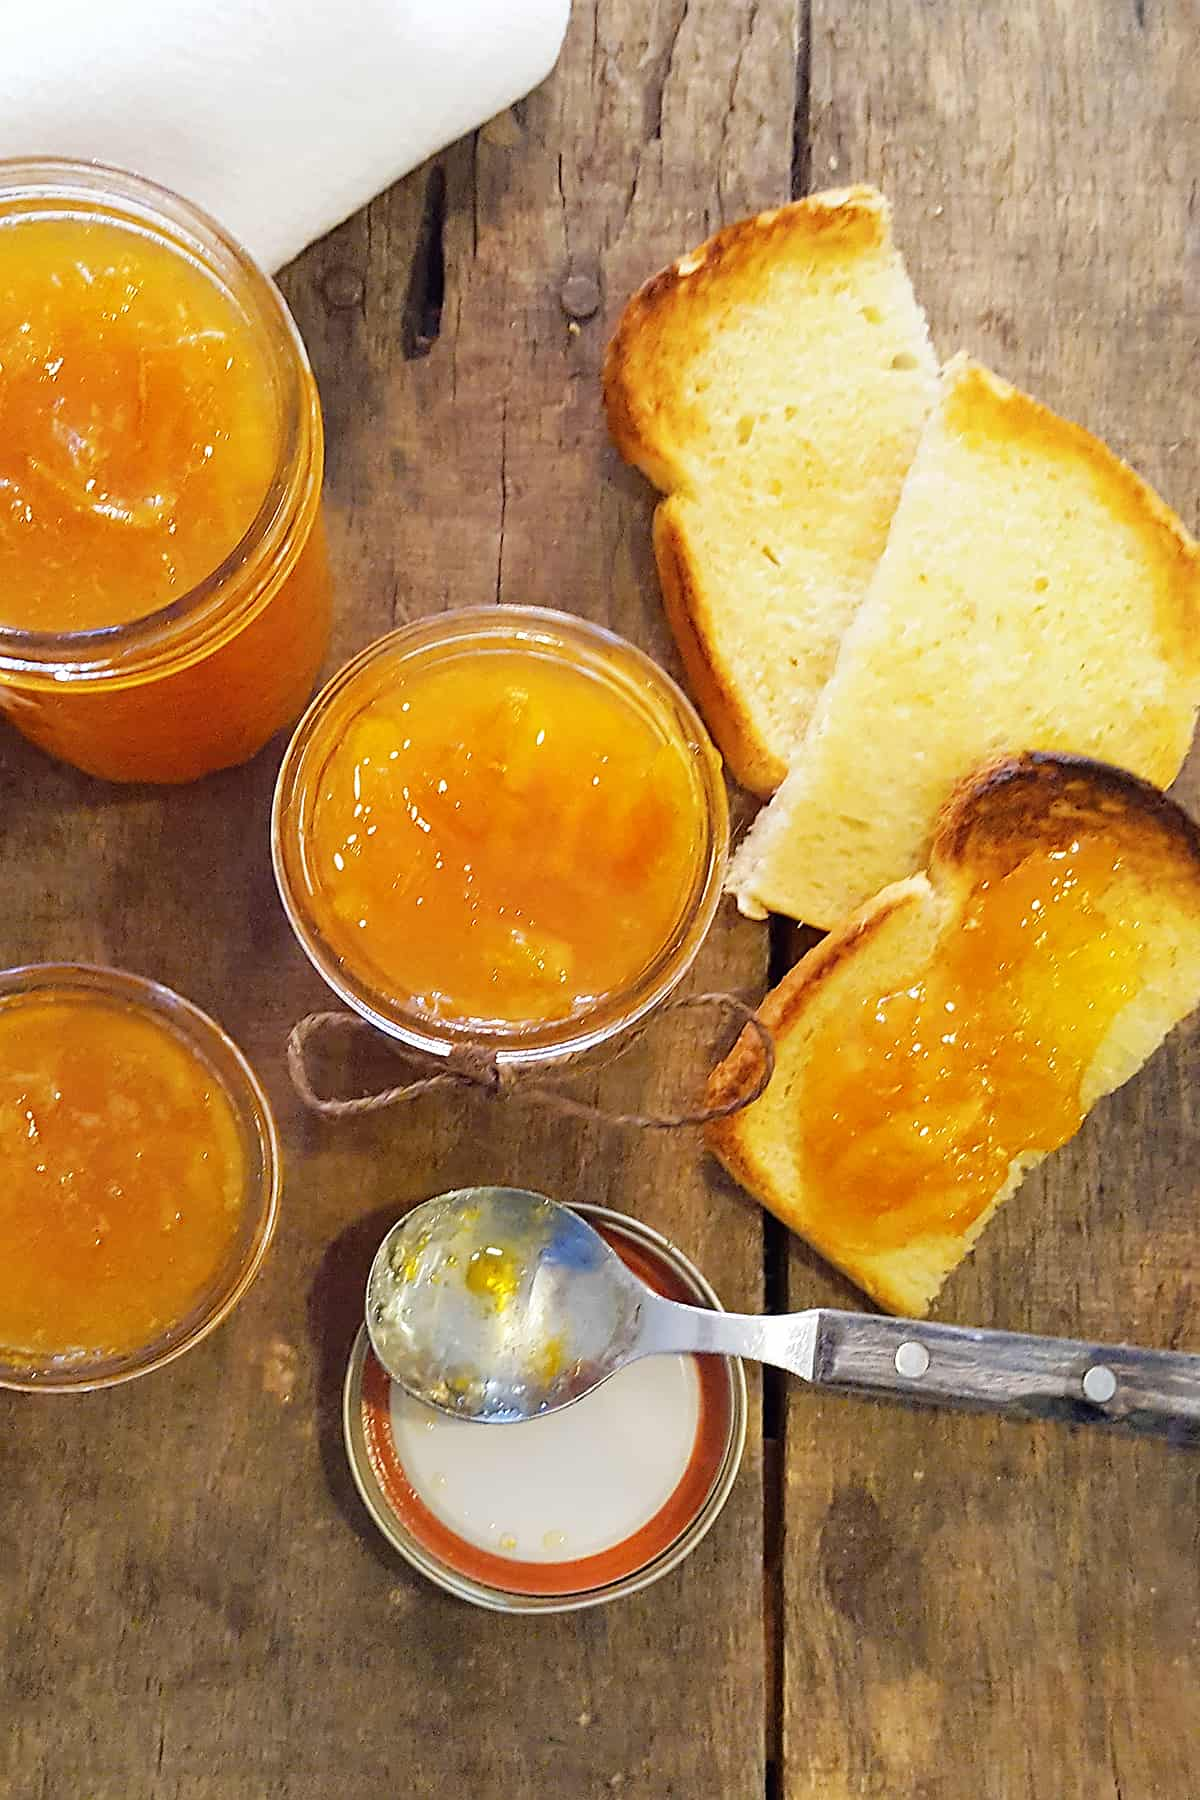 Three jars of orange marmalade with a spoon and toasted bread on a serving board.